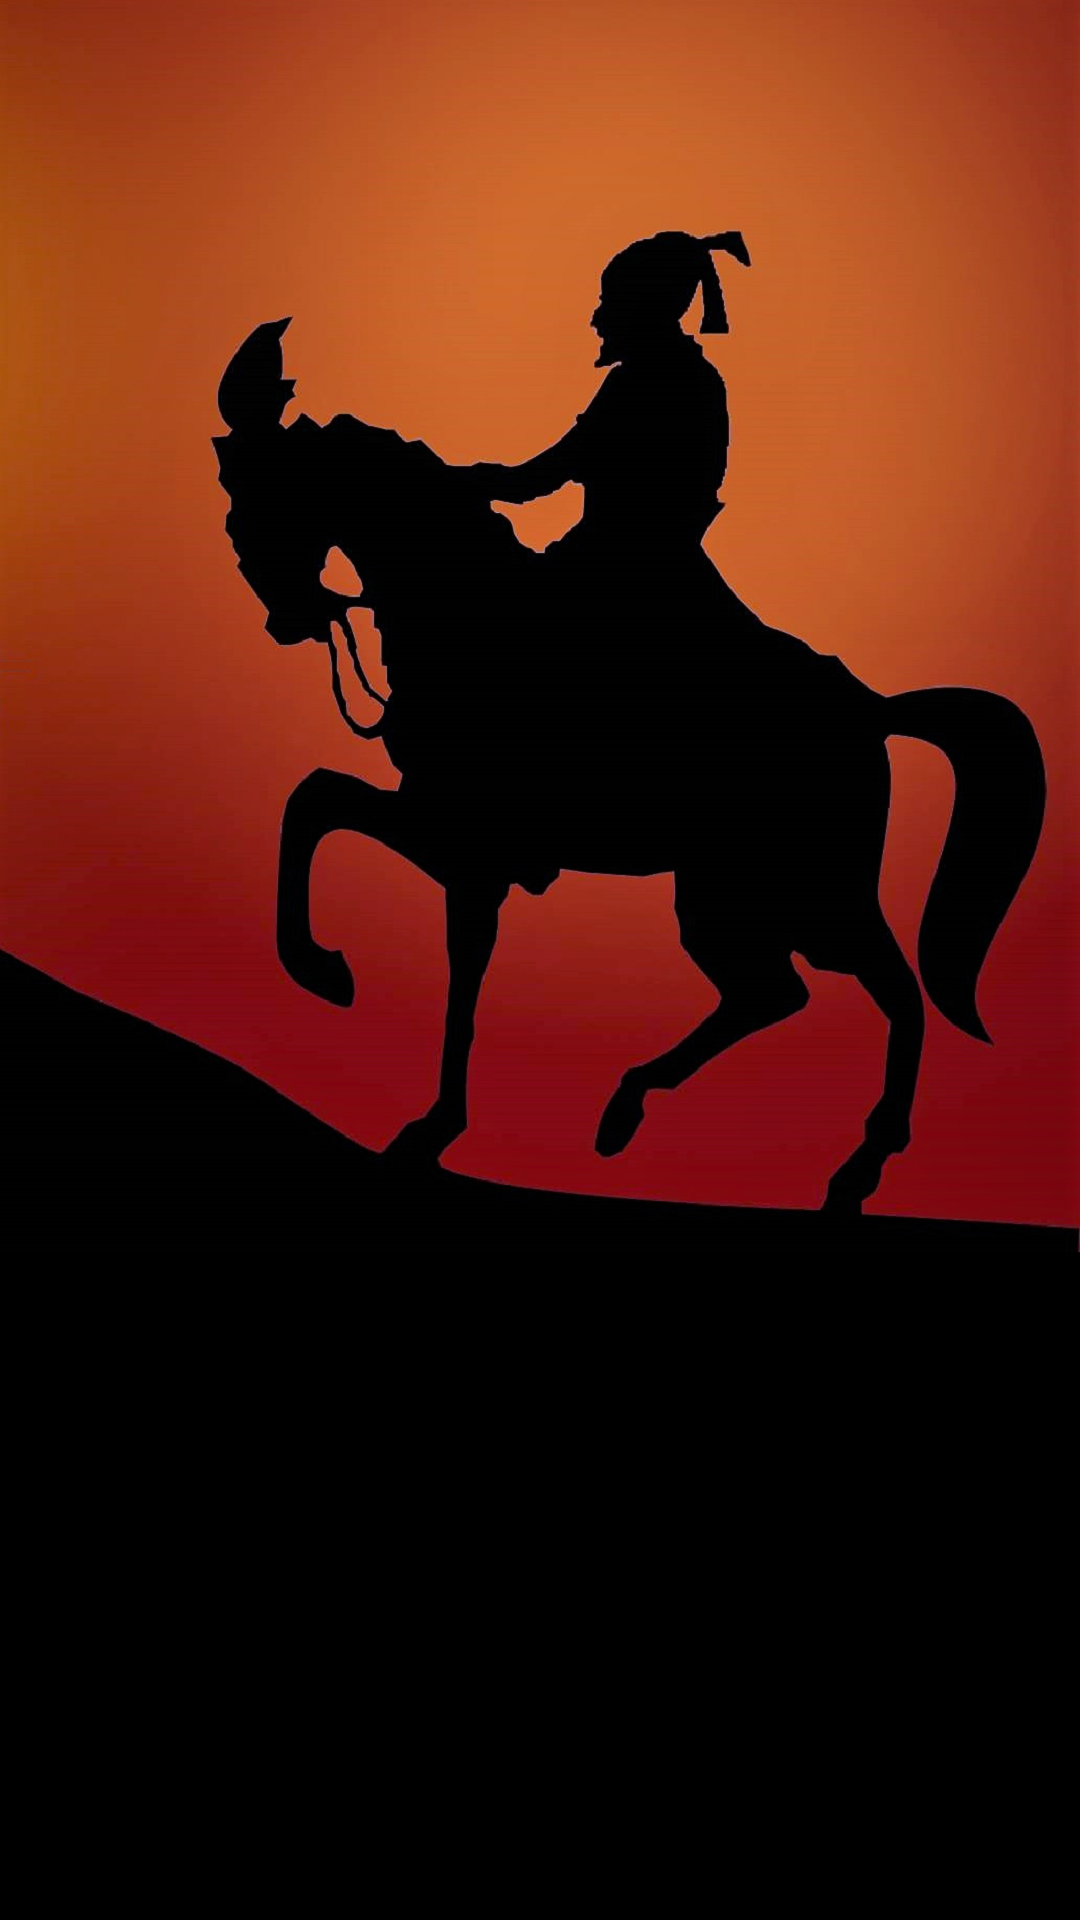 Shivaji Maharaj [1080x1920] - Chhatrapati Shivaji Maharaj Status , HD Wallpaper & Backgrounds